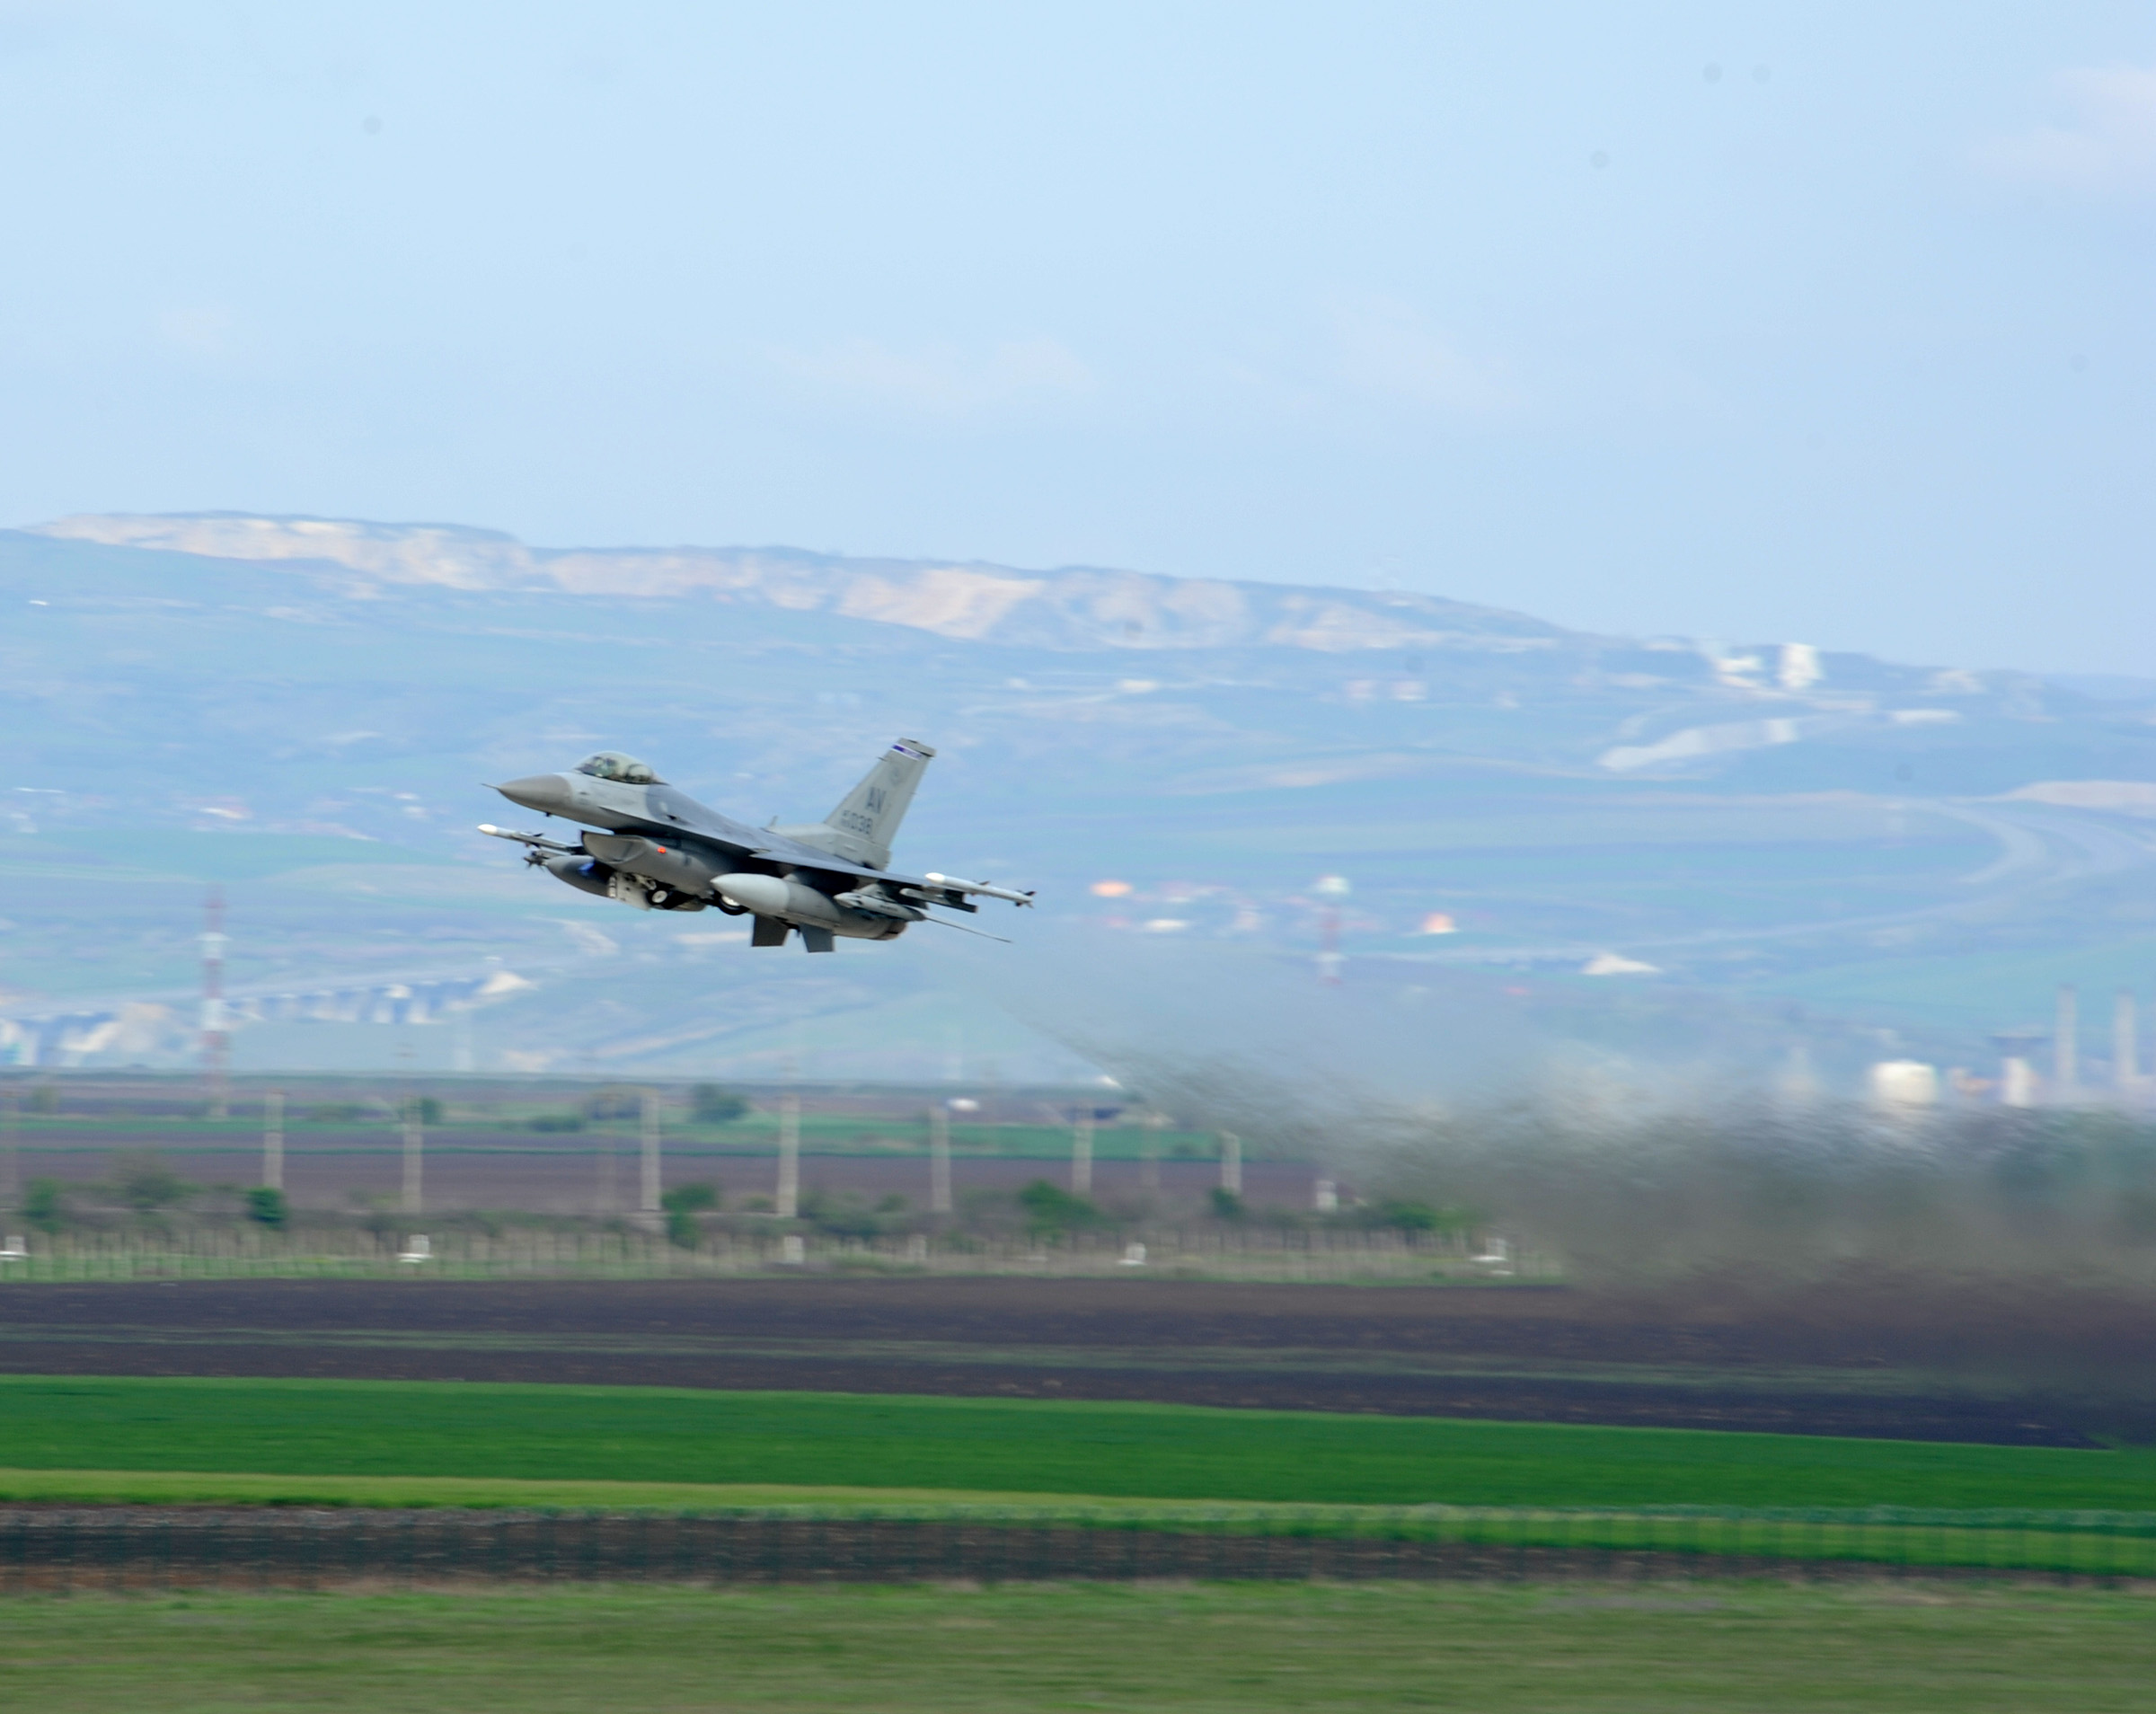 File:A U S  Air Force F-16 Fighting Falcon aircraft takes off from